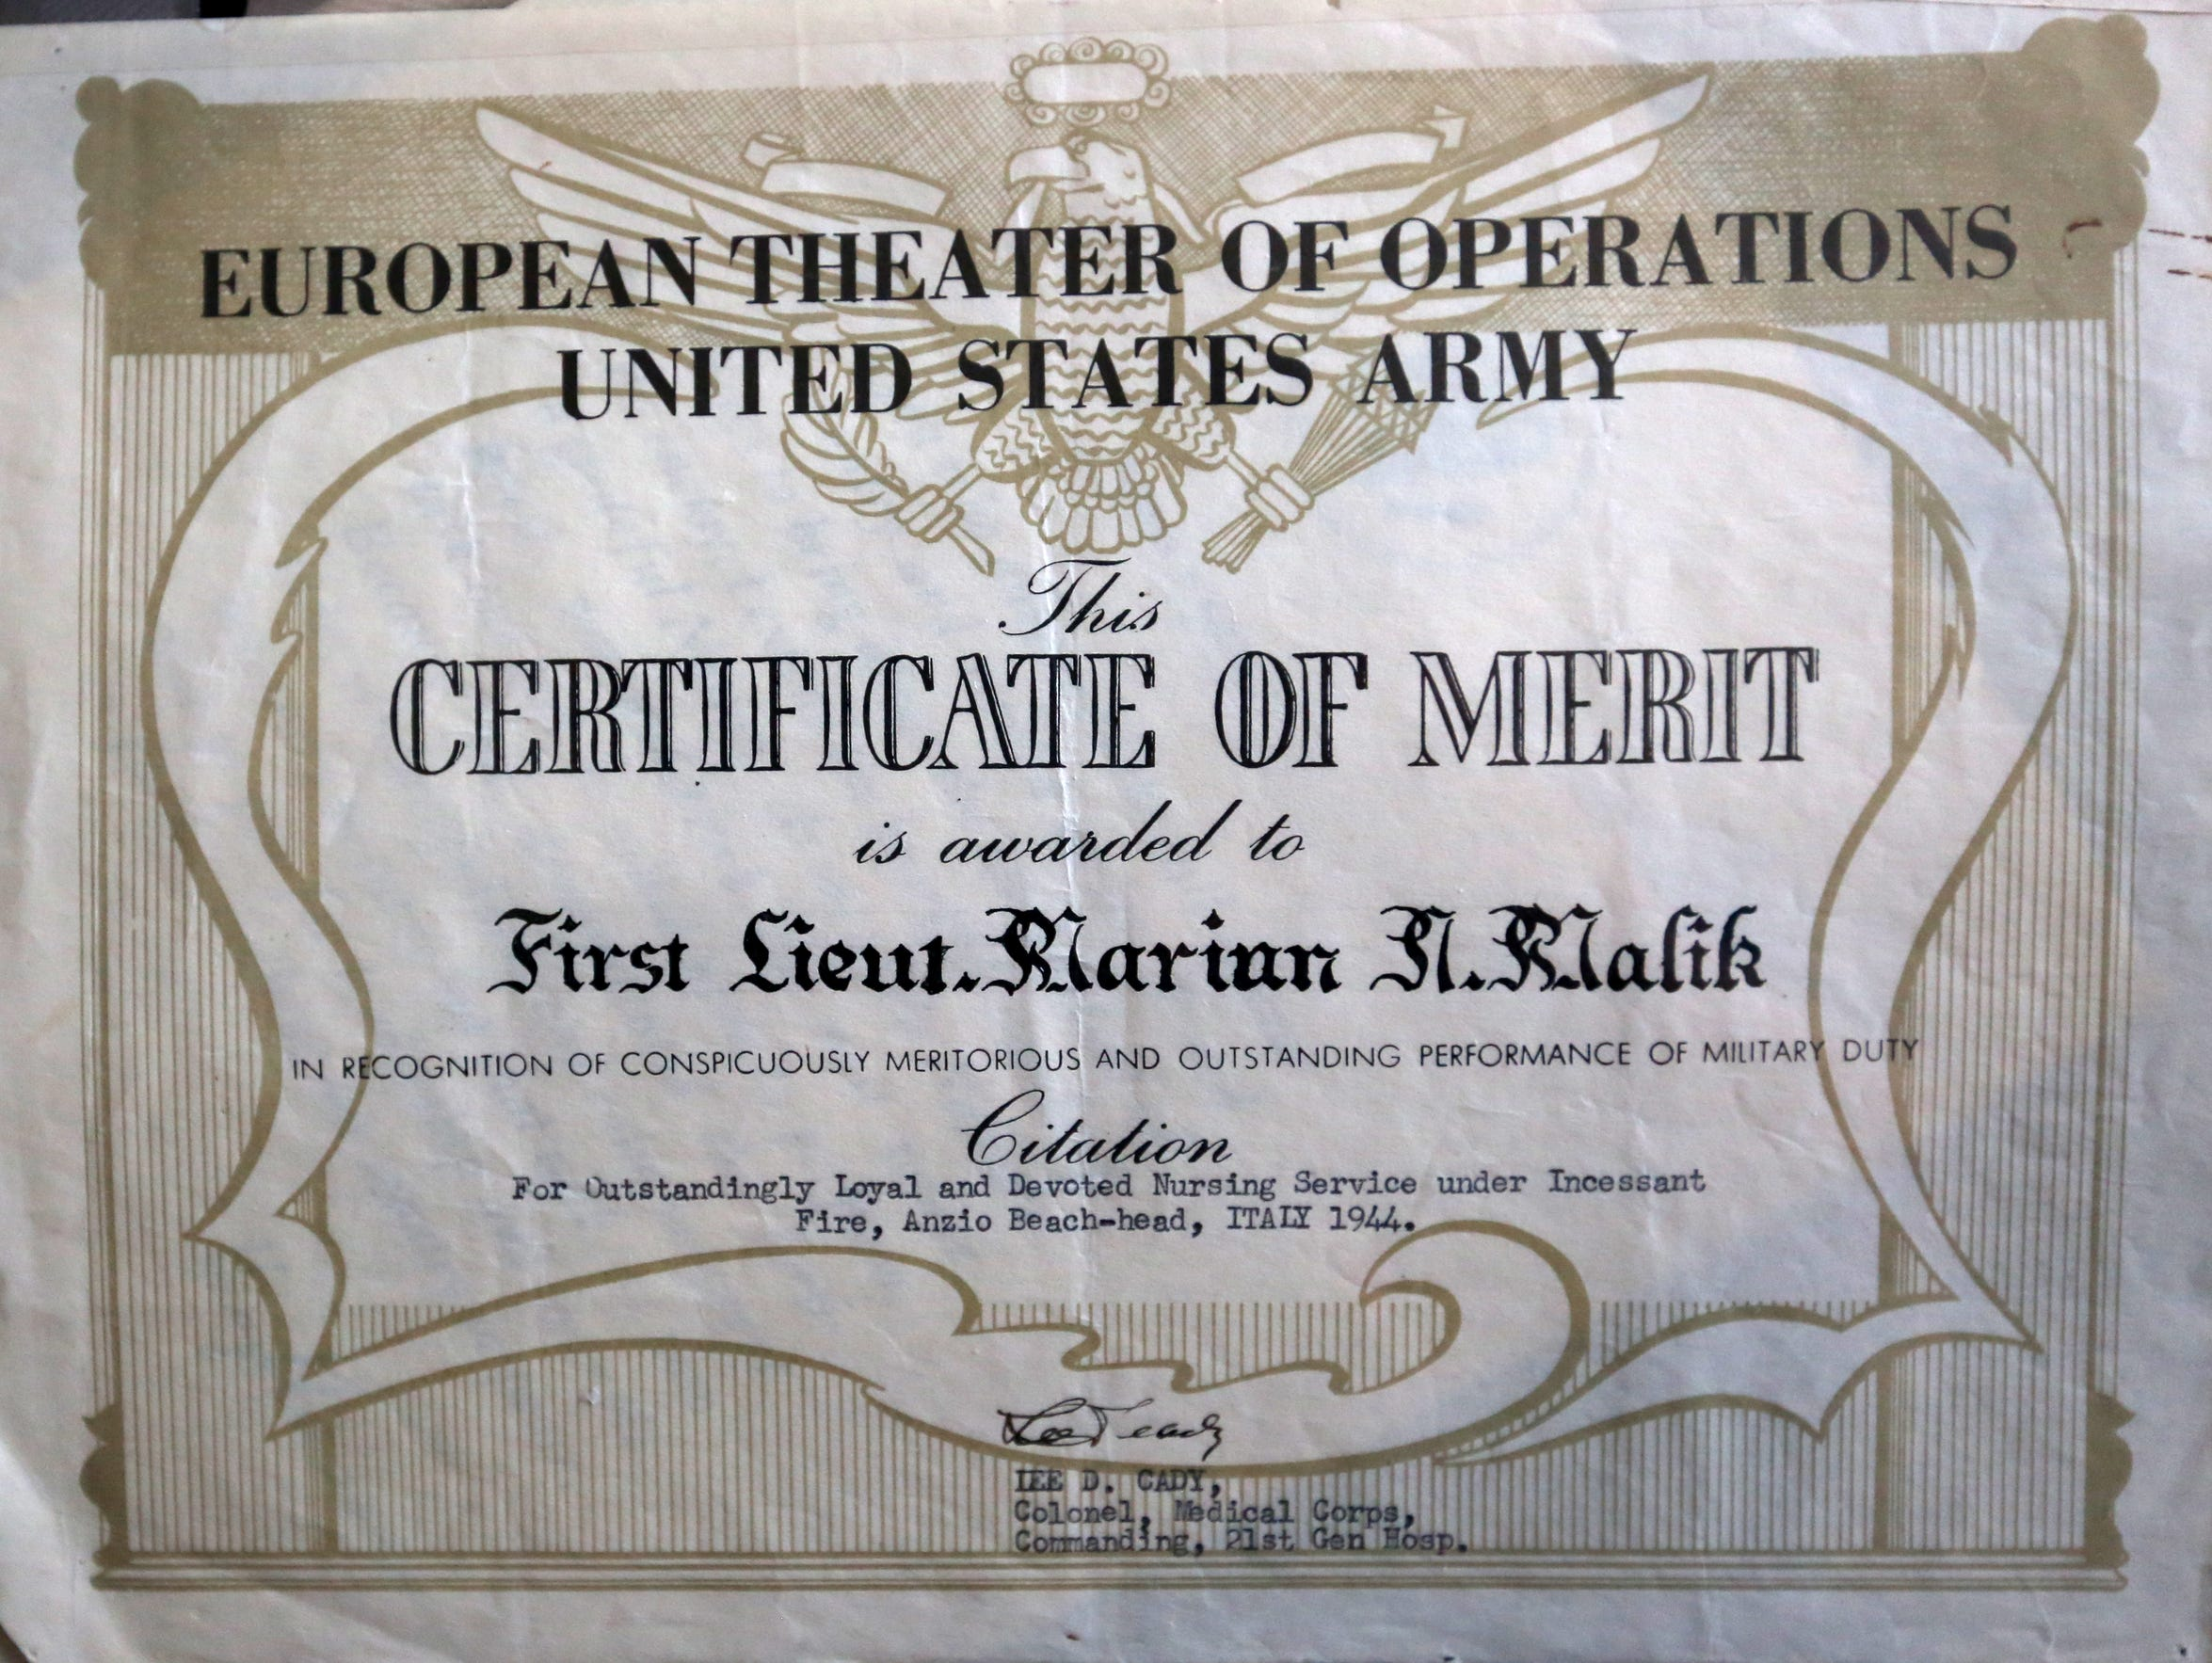 This is a commendation that First Lieutenant Marian